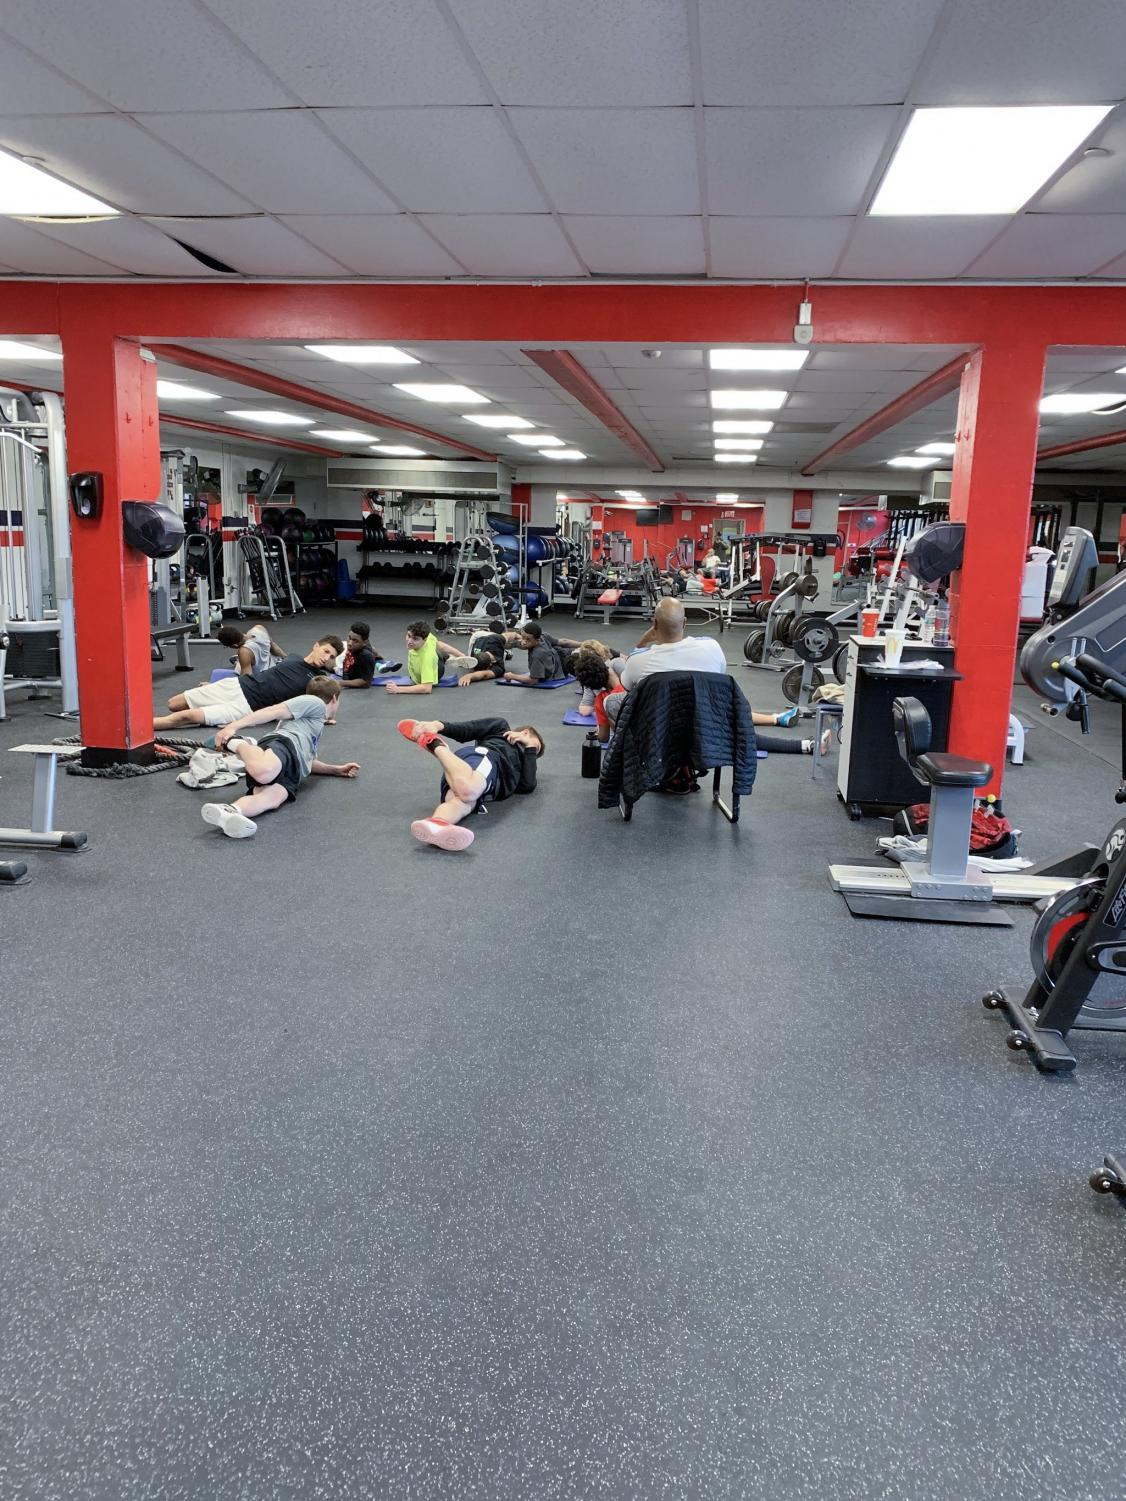 The boys varsity basketball team stretches at an after school practice in the weight room. A variety of workout methods allow athletes to perform at their best.